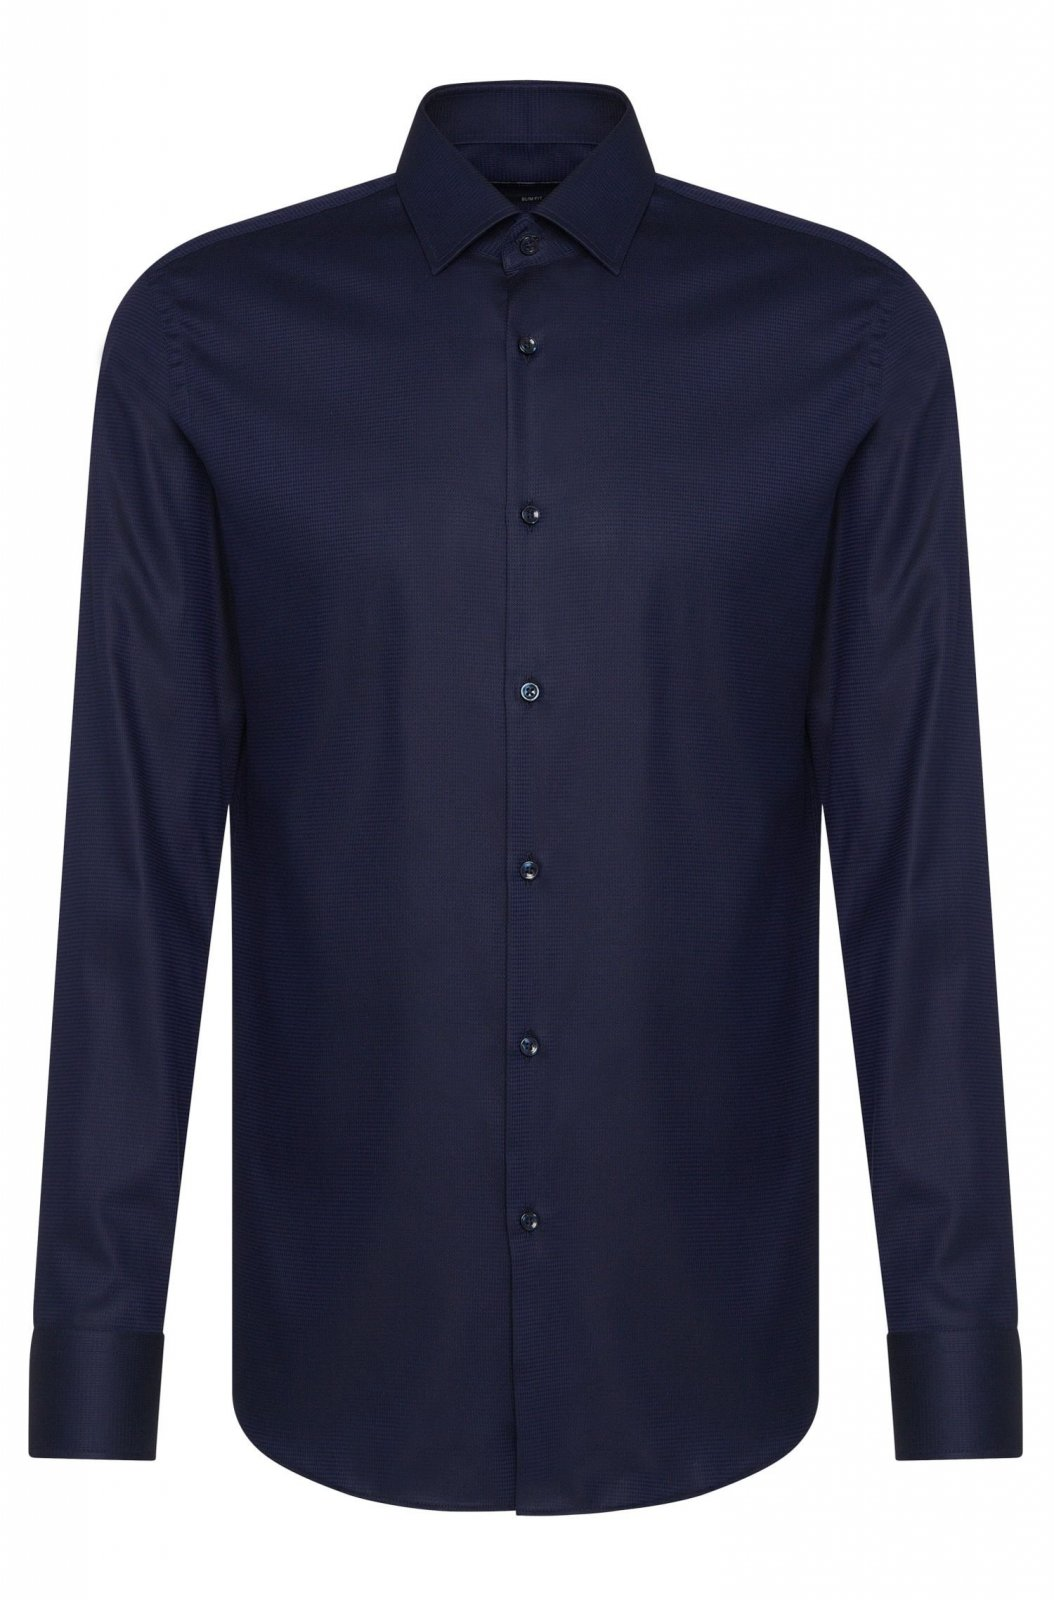 hugo boss chemise slim fit jenno bleu nuit 50322450 chemises pour homme. Black Bedroom Furniture Sets. Home Design Ideas